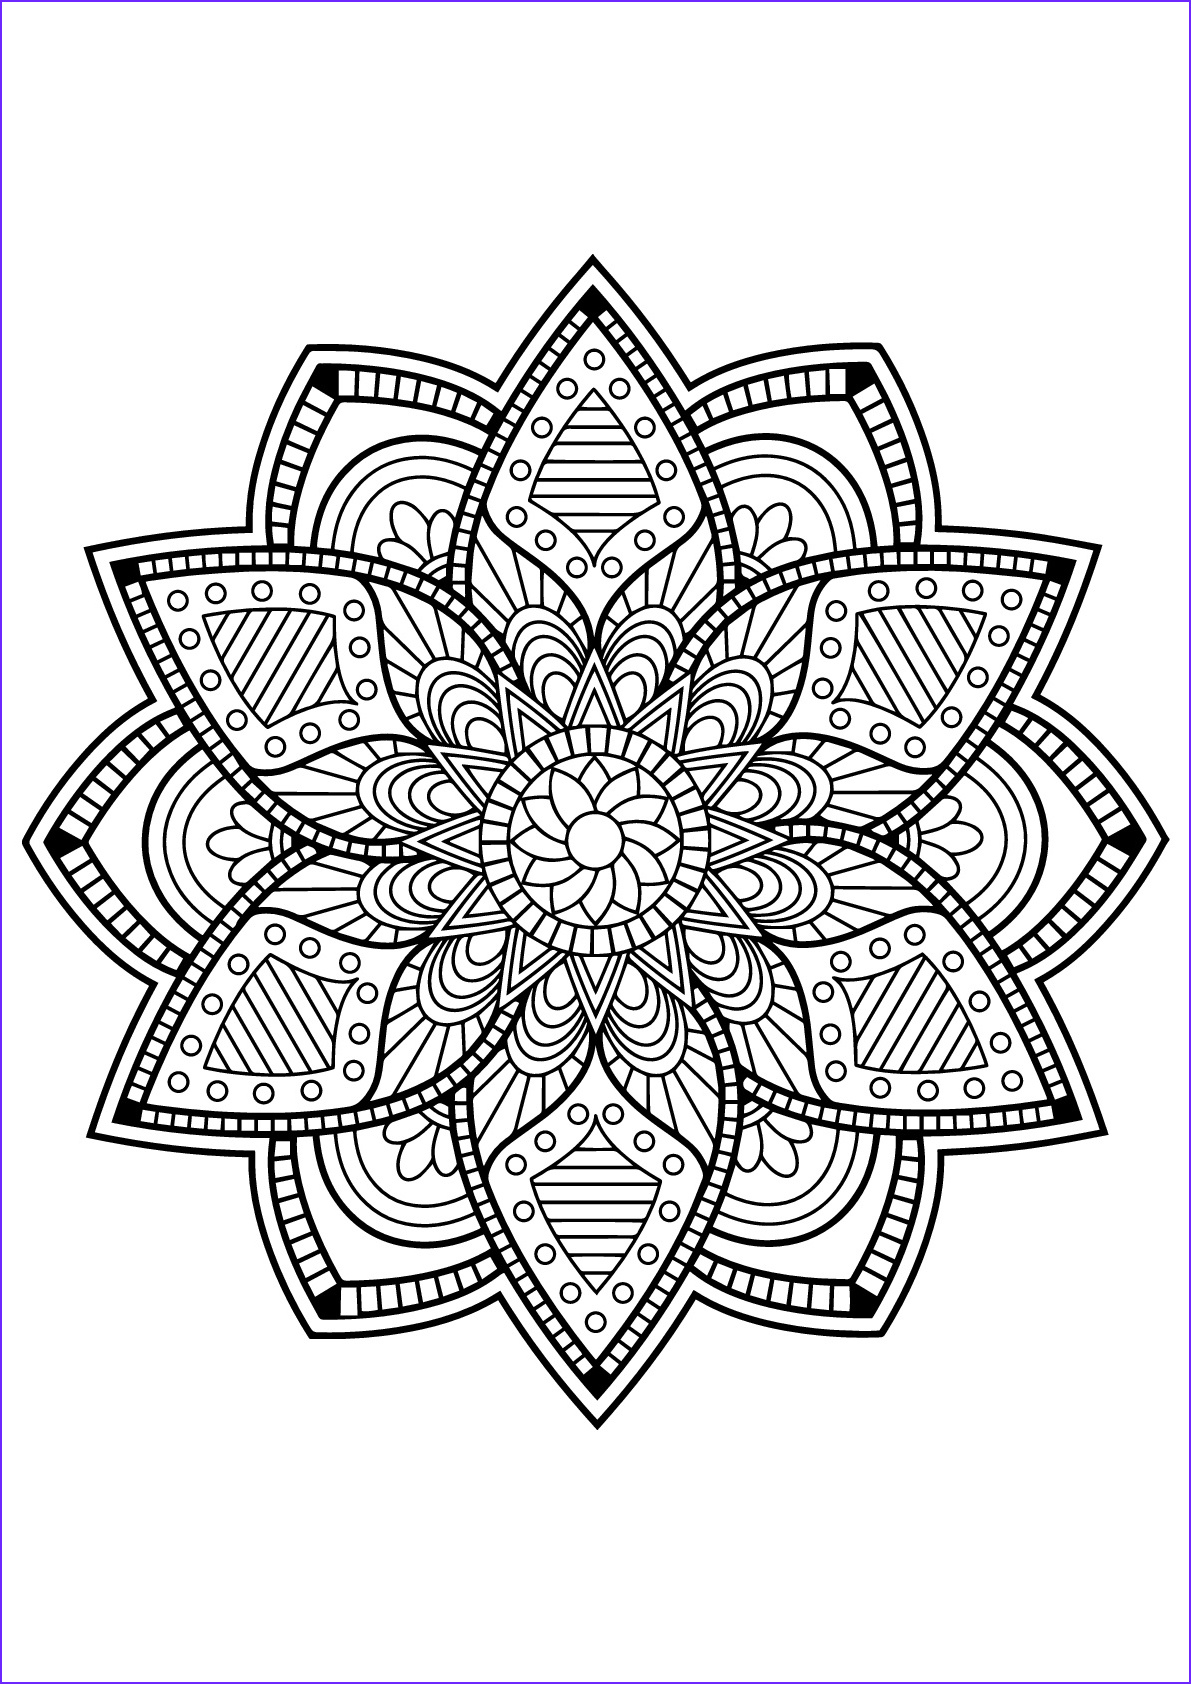 Mandala Adult Coloring Books Luxury Gallery Mandalas to Color for Children Mandalas Kids Coloring Pages